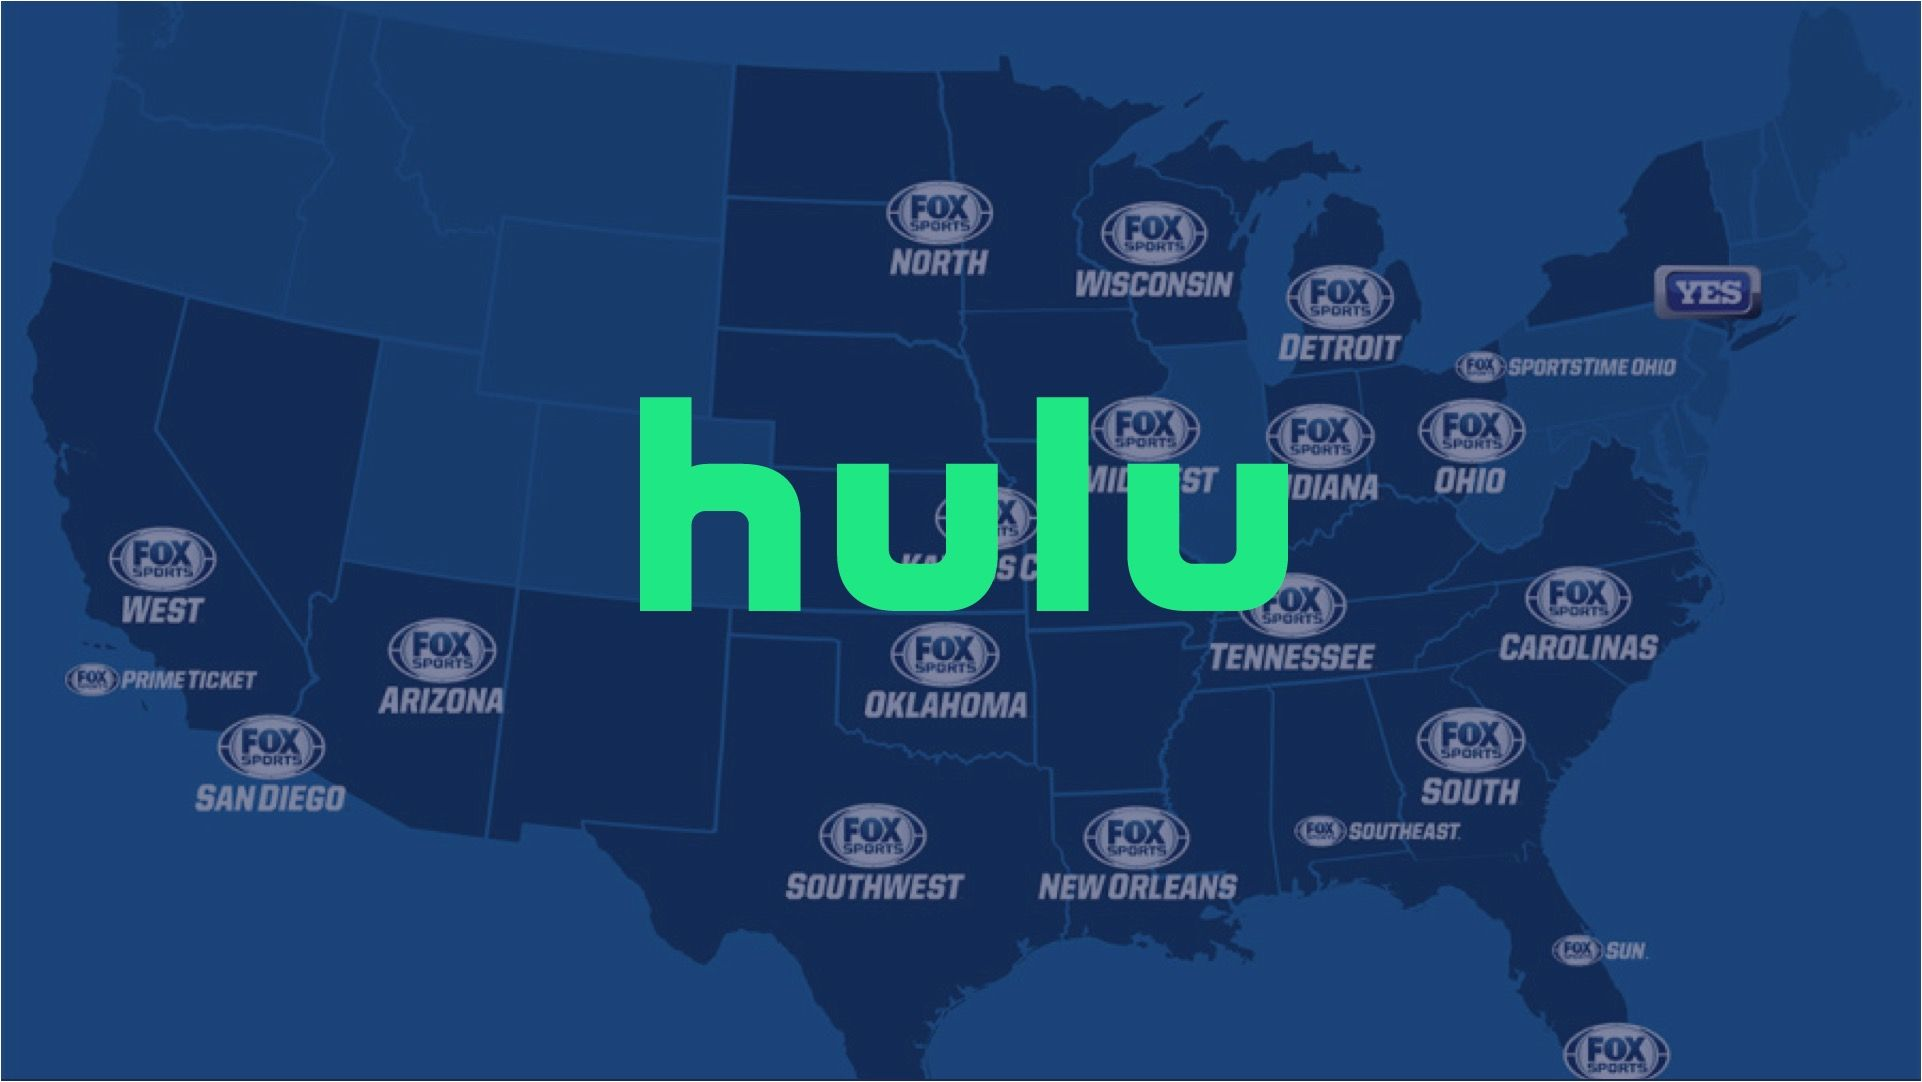 What Regional Sports Networks (RSNs) Are Available on Hulu